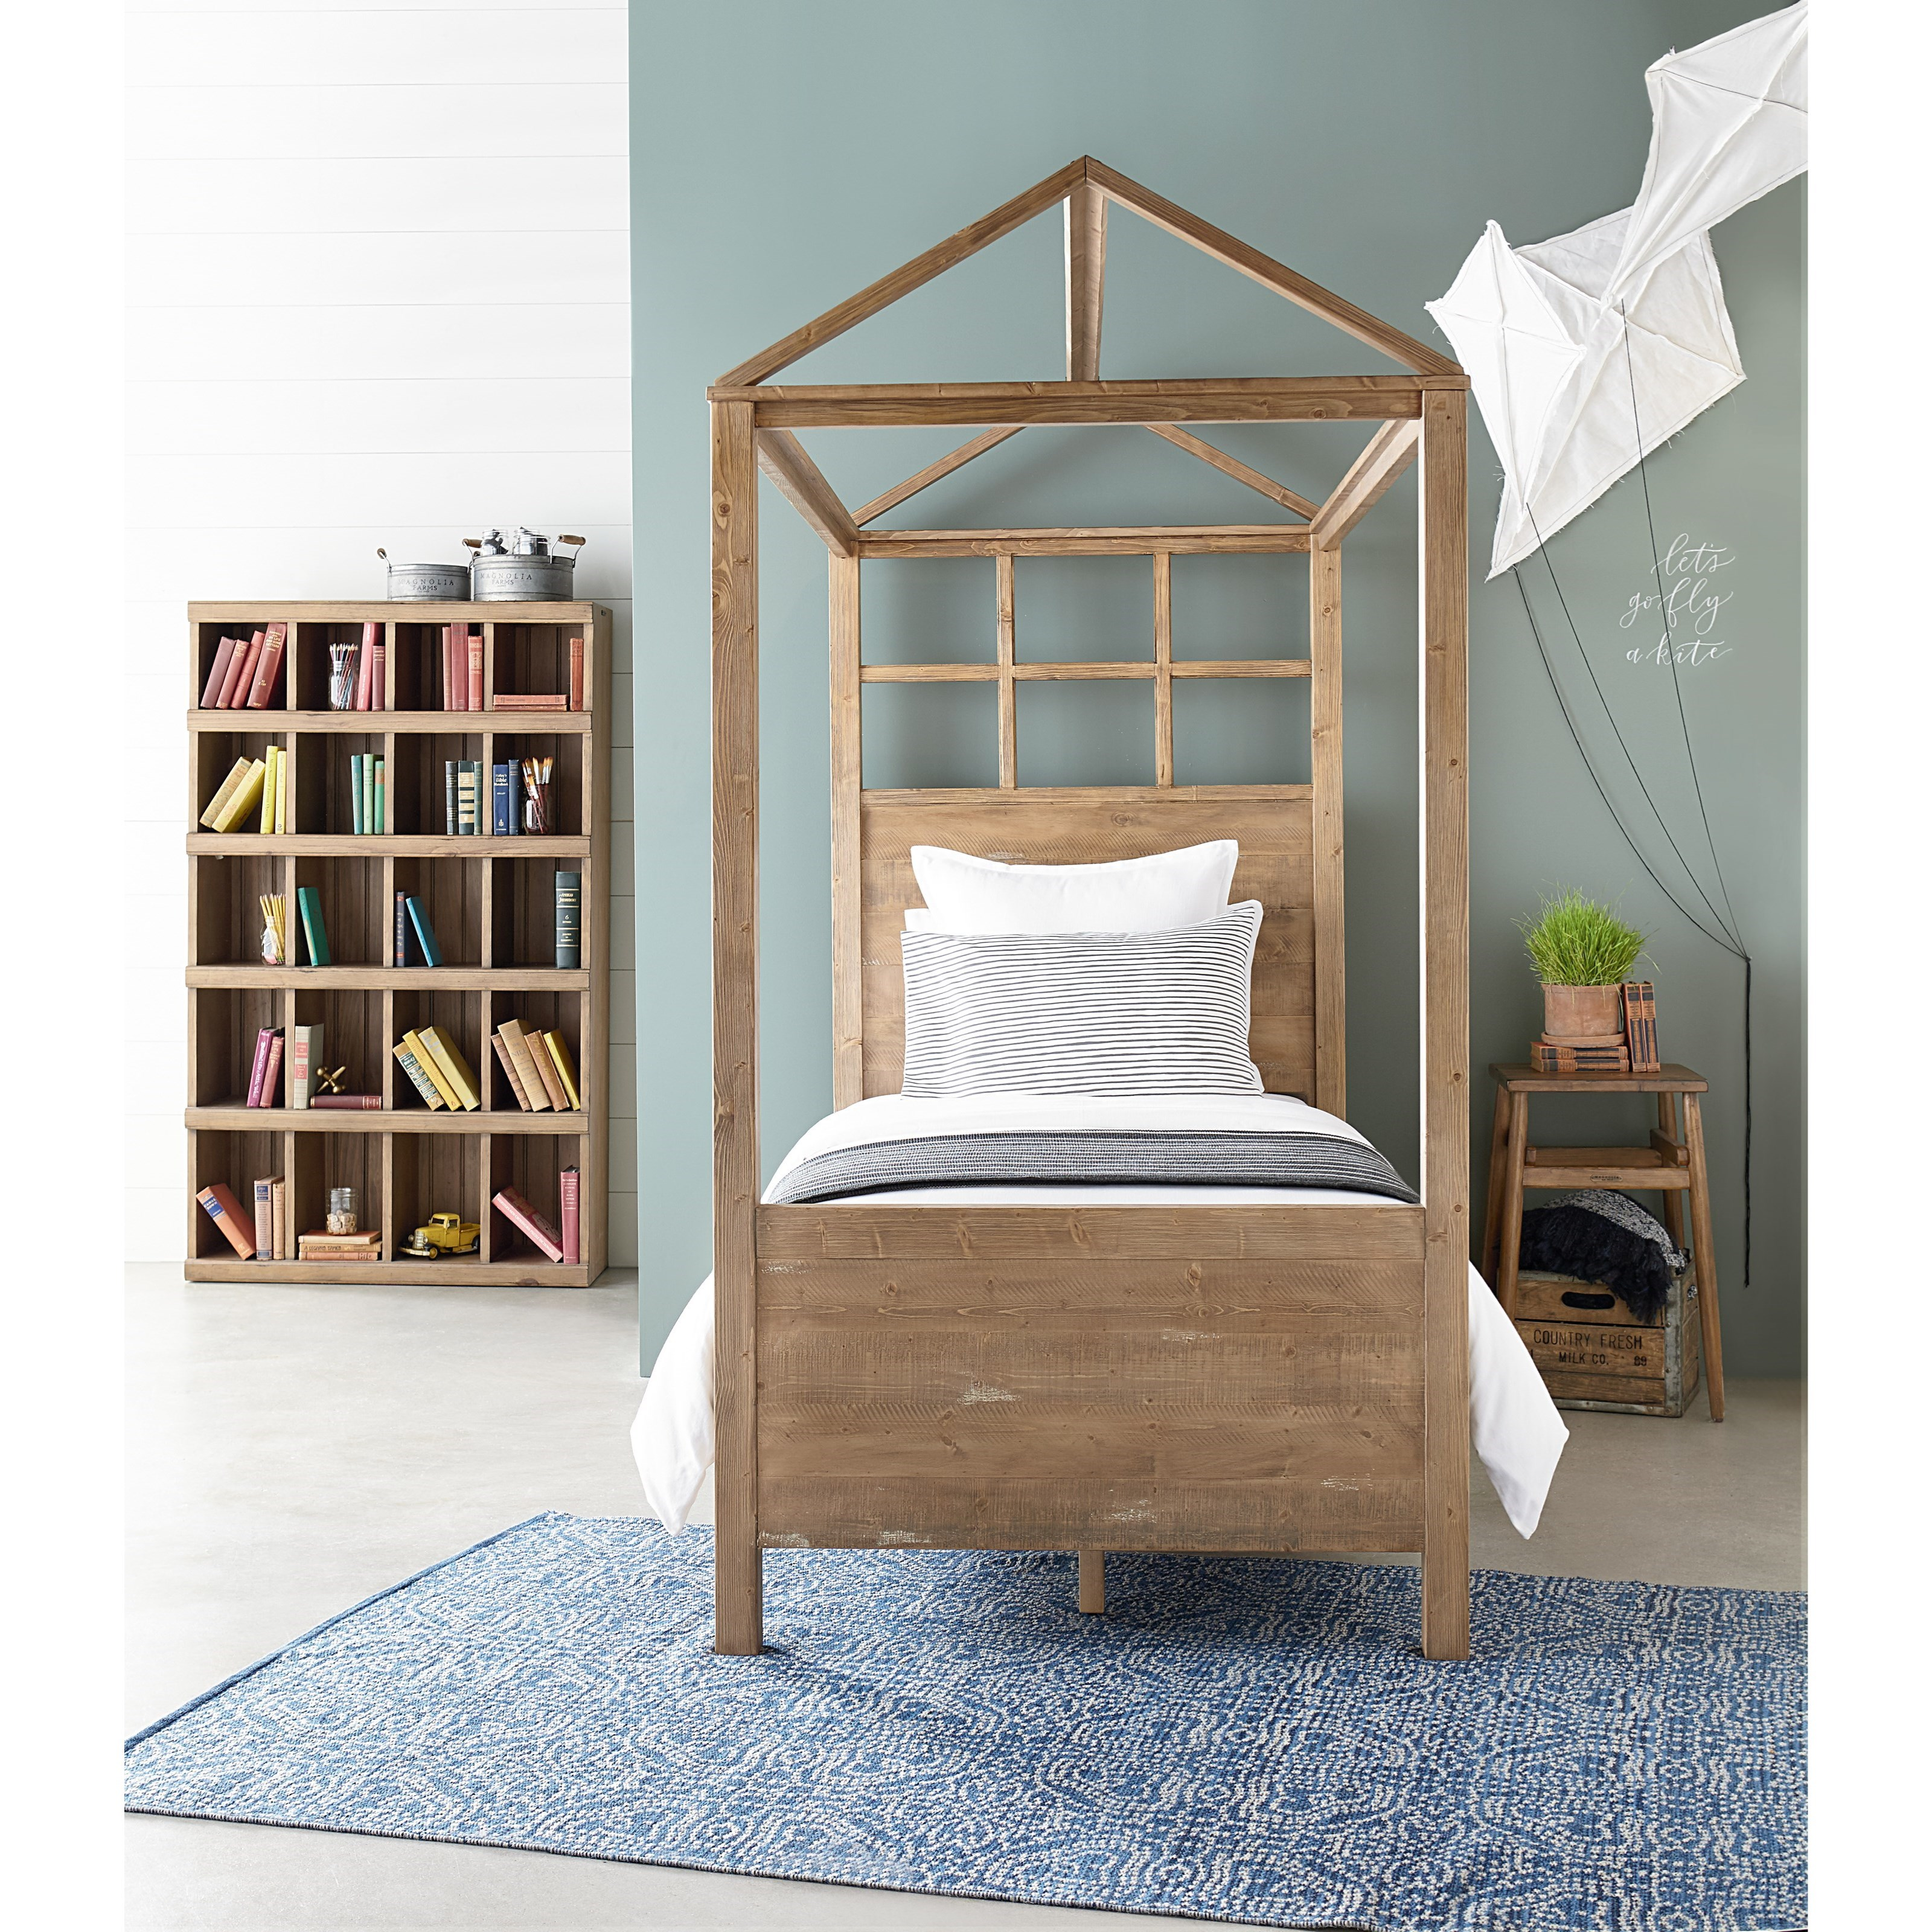 Canopy Style Bed Available For Order In These Wood Colours: Magnolia Home By Joanna Gaines Boho Playhouse Full Canopy